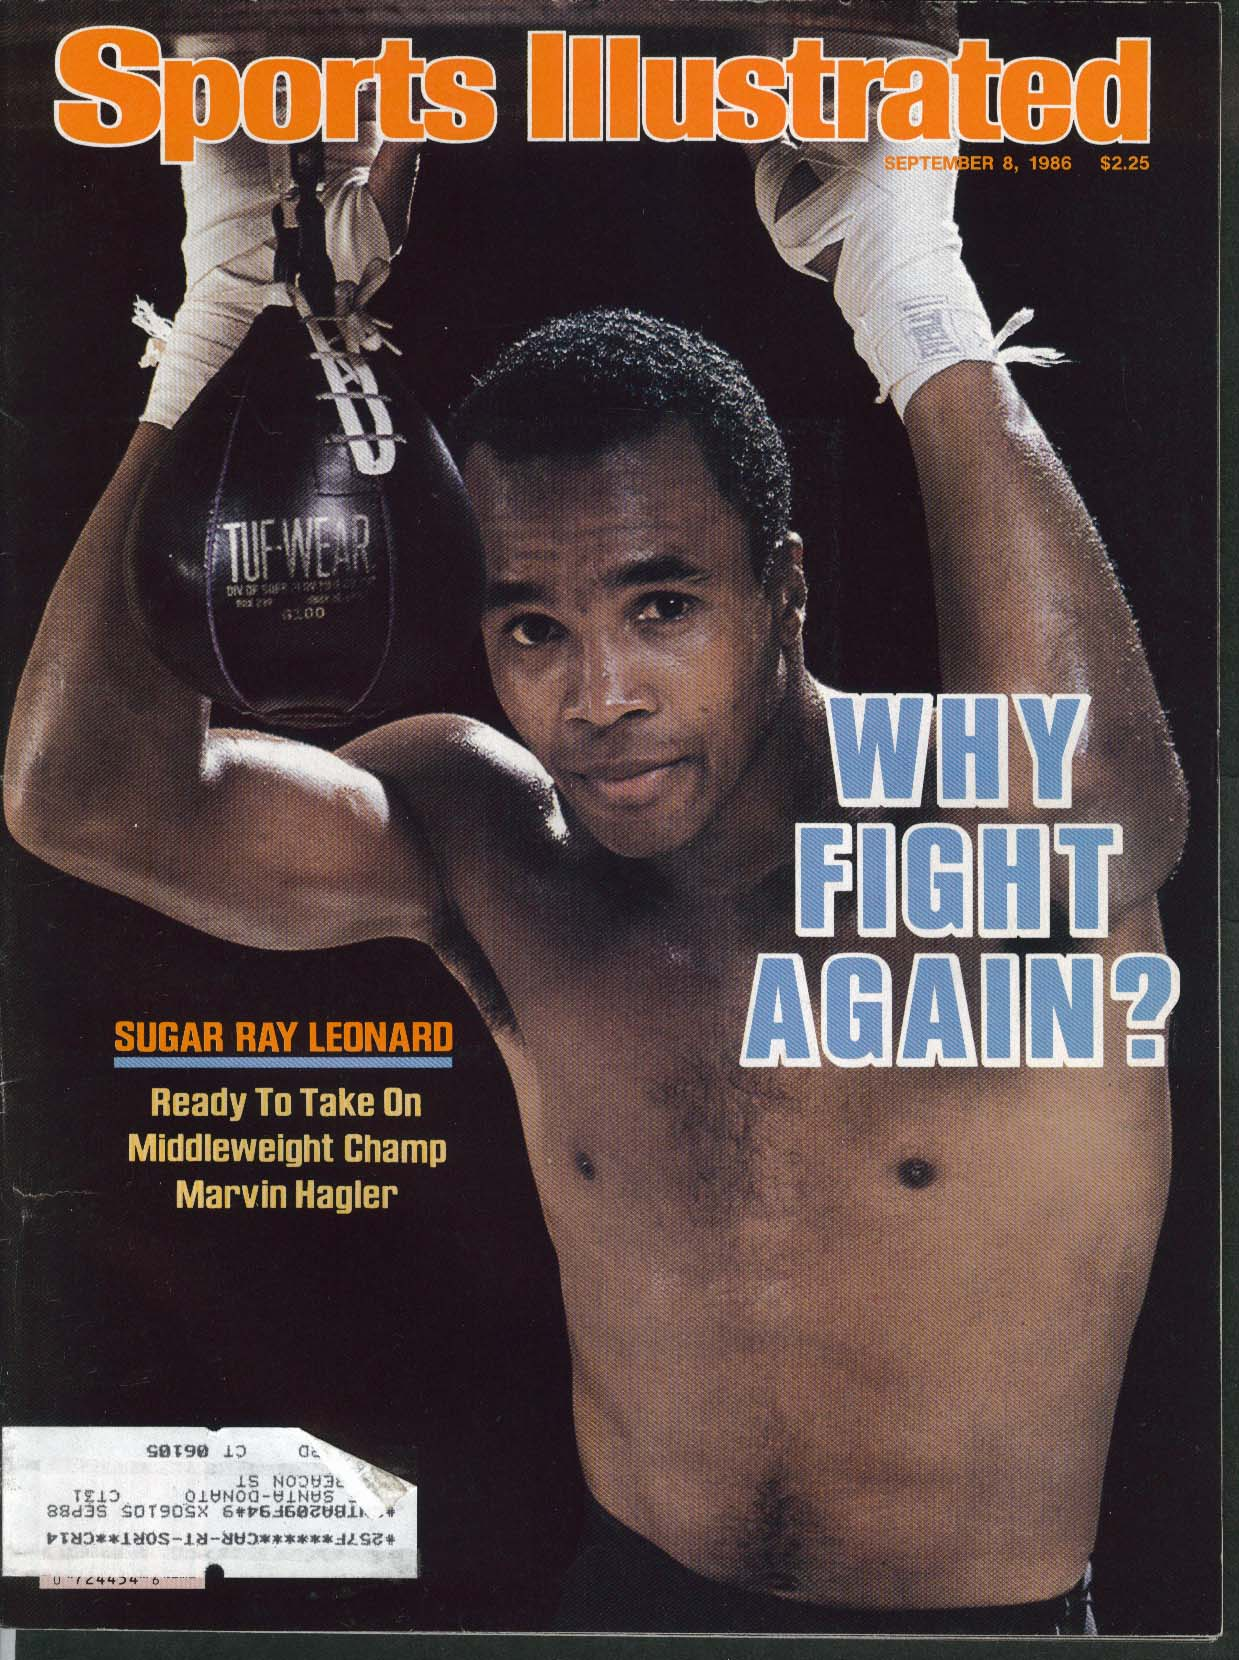 SPORTS ILLUSTRATED Sugar Ray Leonard Marvin Hagler Chet Atkins 9/8 1986